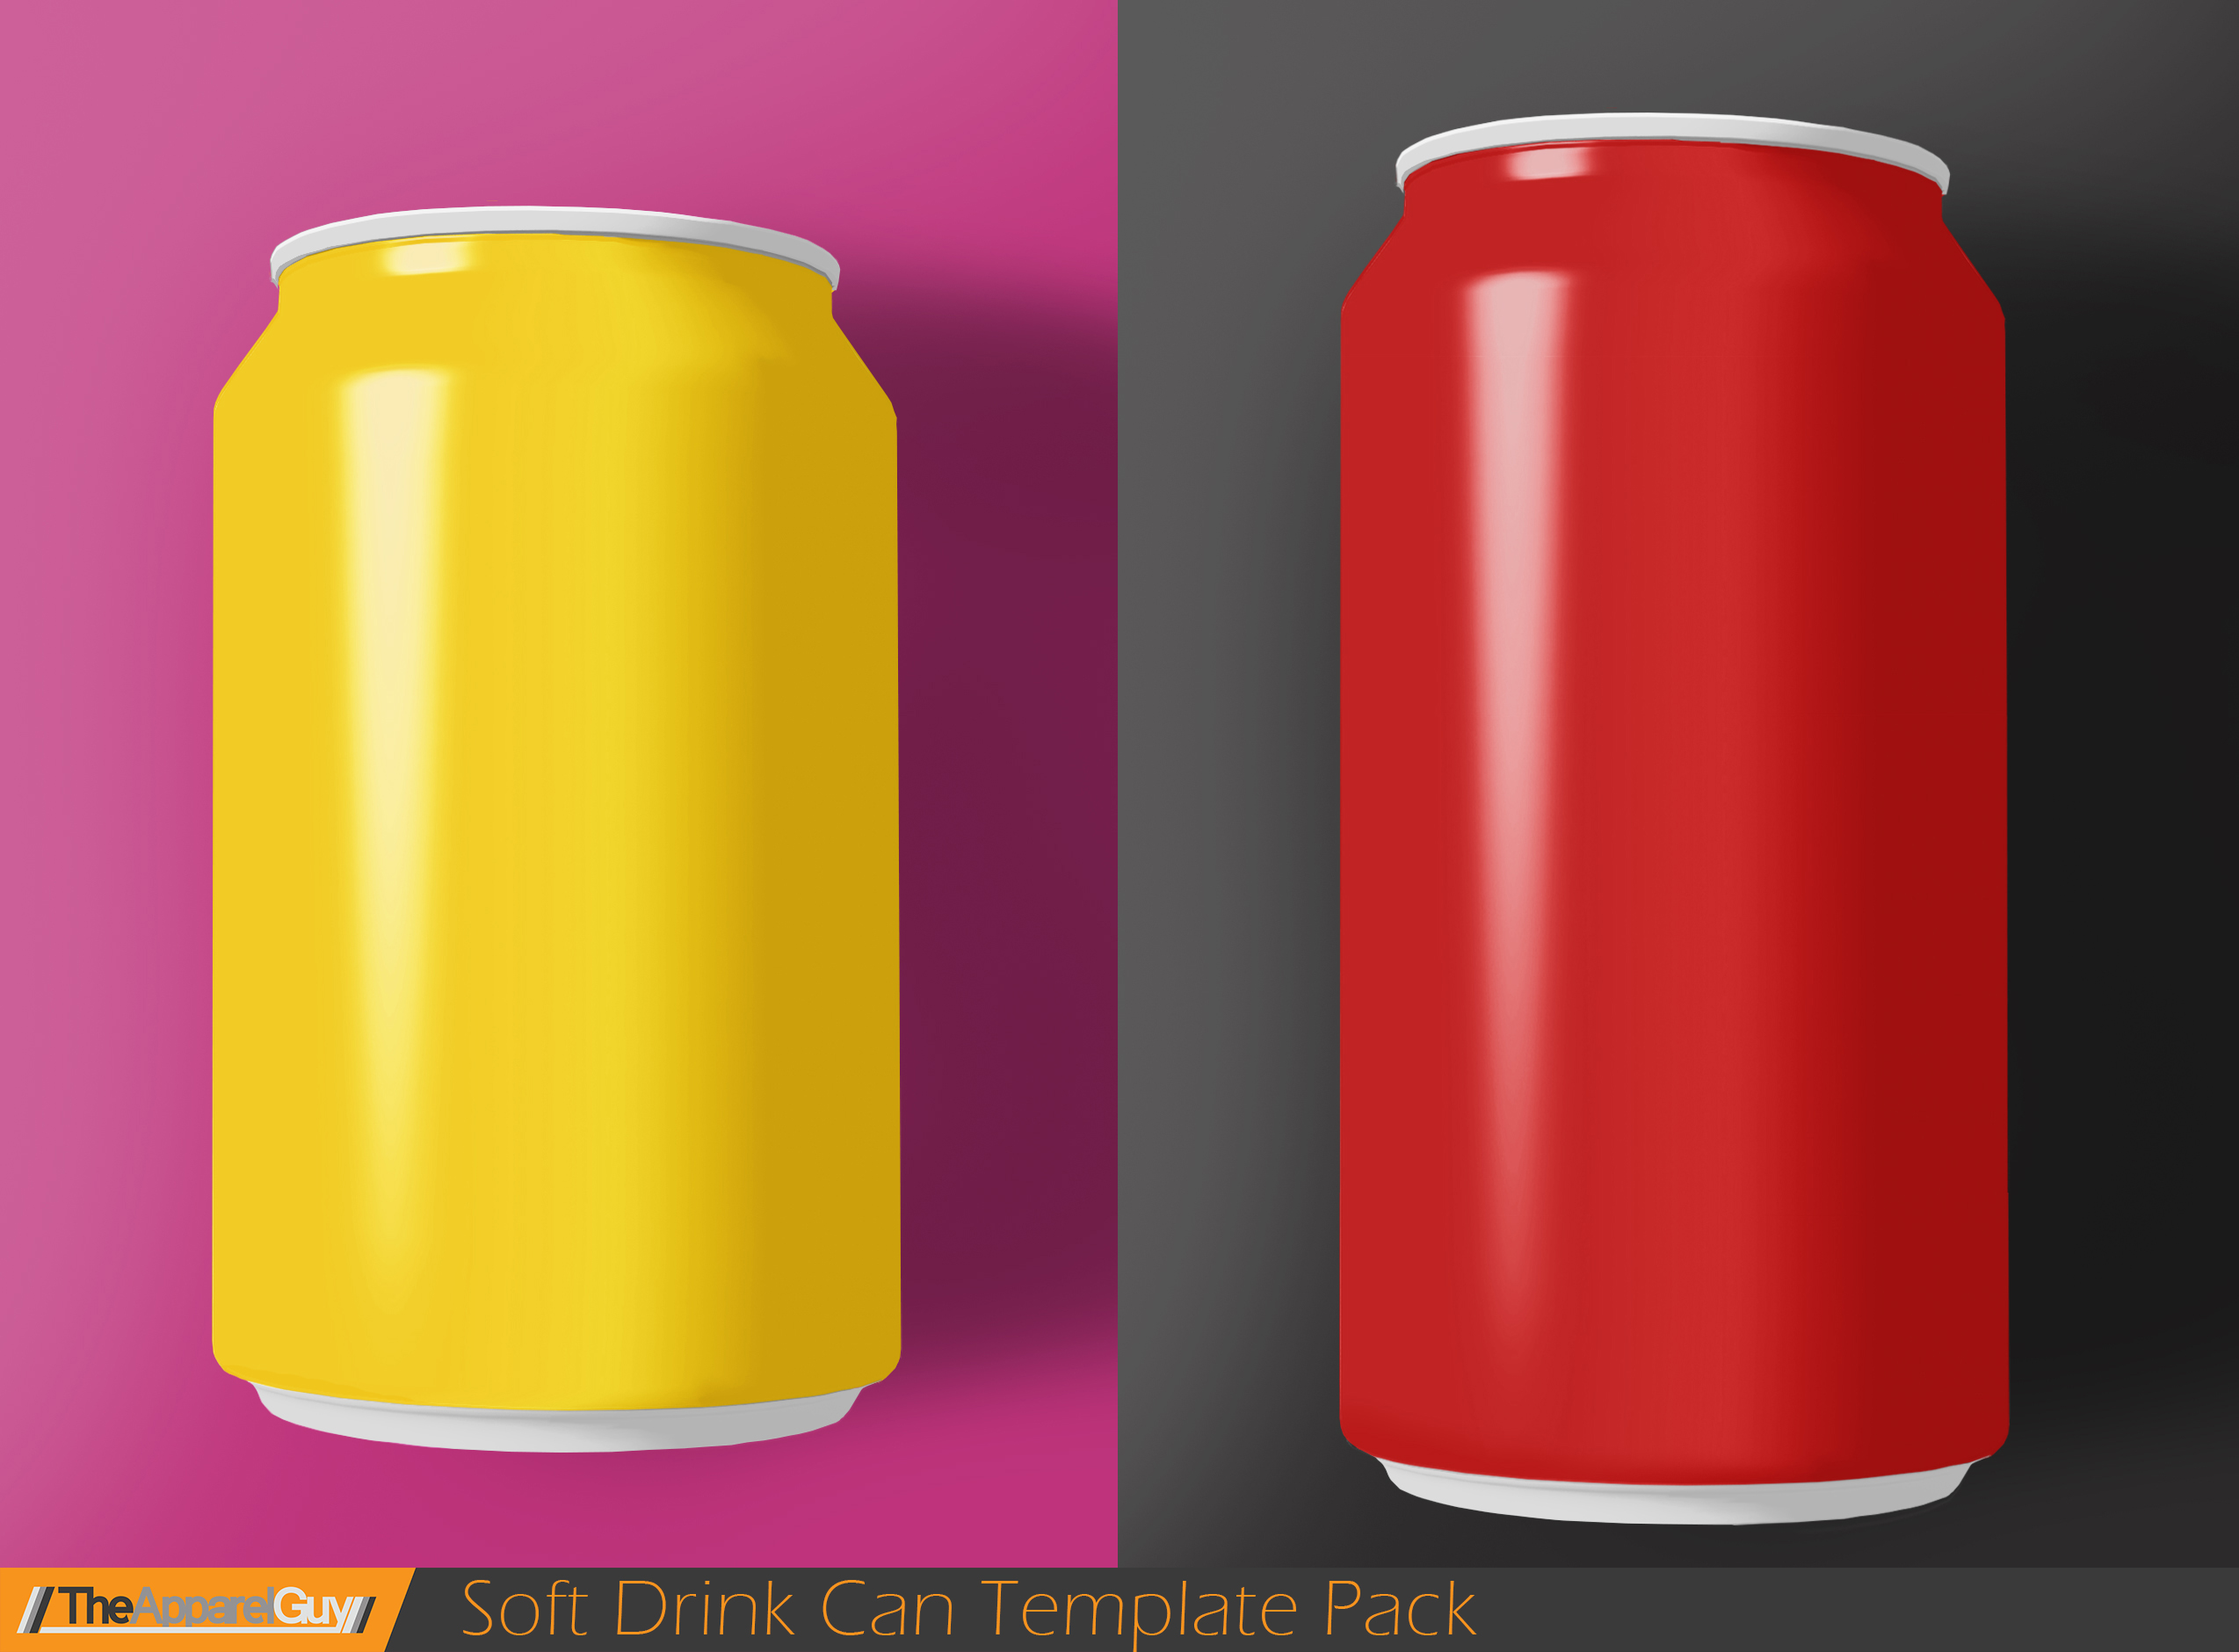 Soft Drink Can Template Pack